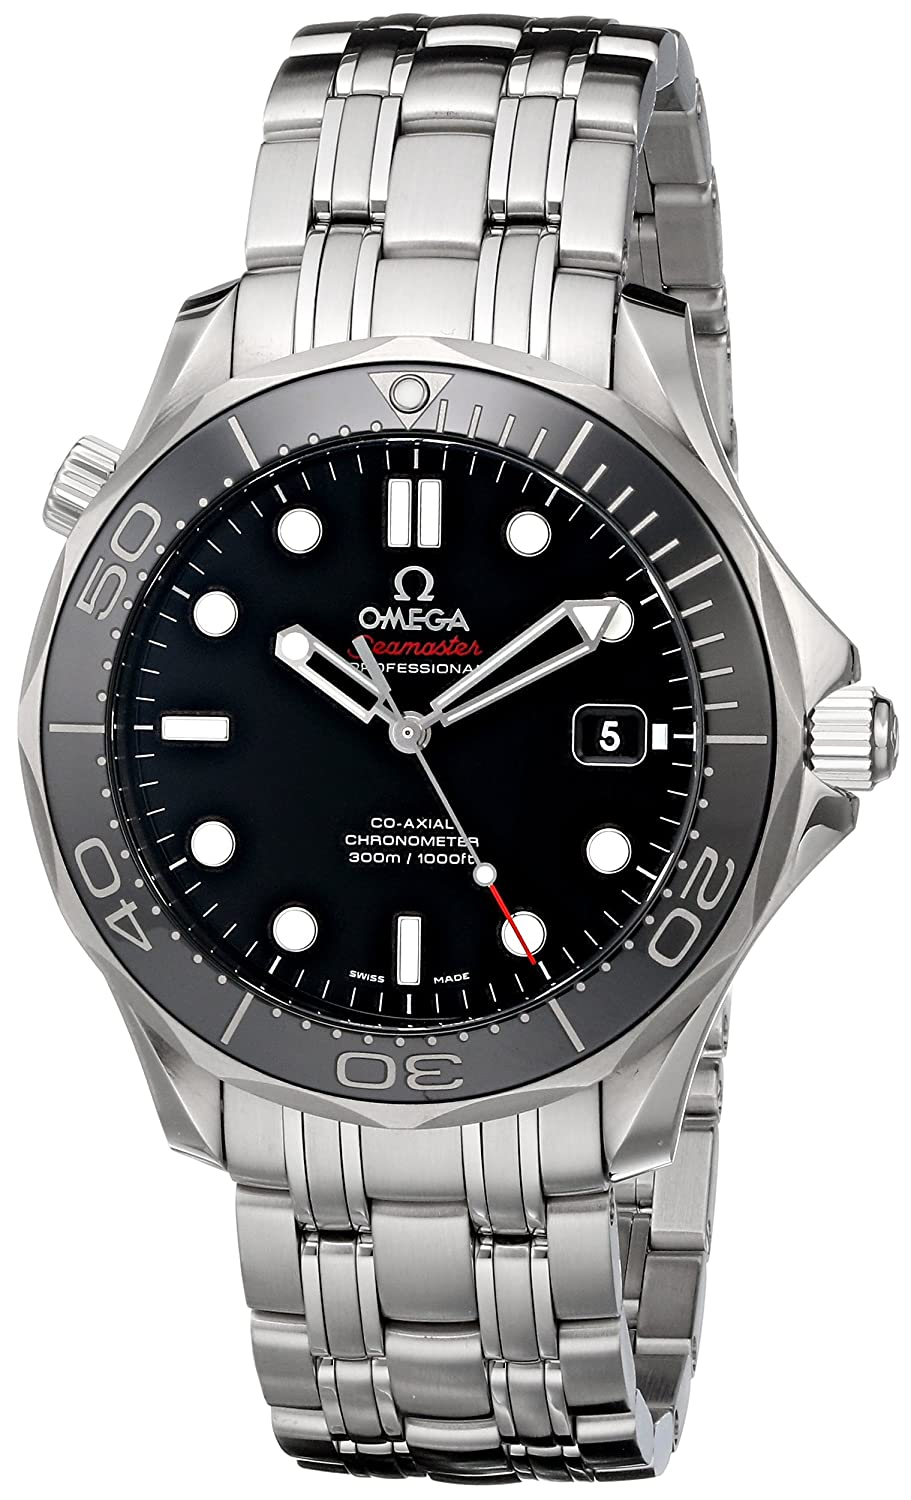 9de2d45fb35 Amazon.com  Omega Men s 212.30.41.20.01.003 Seamaster Black Dial Watch   Omega  Watches